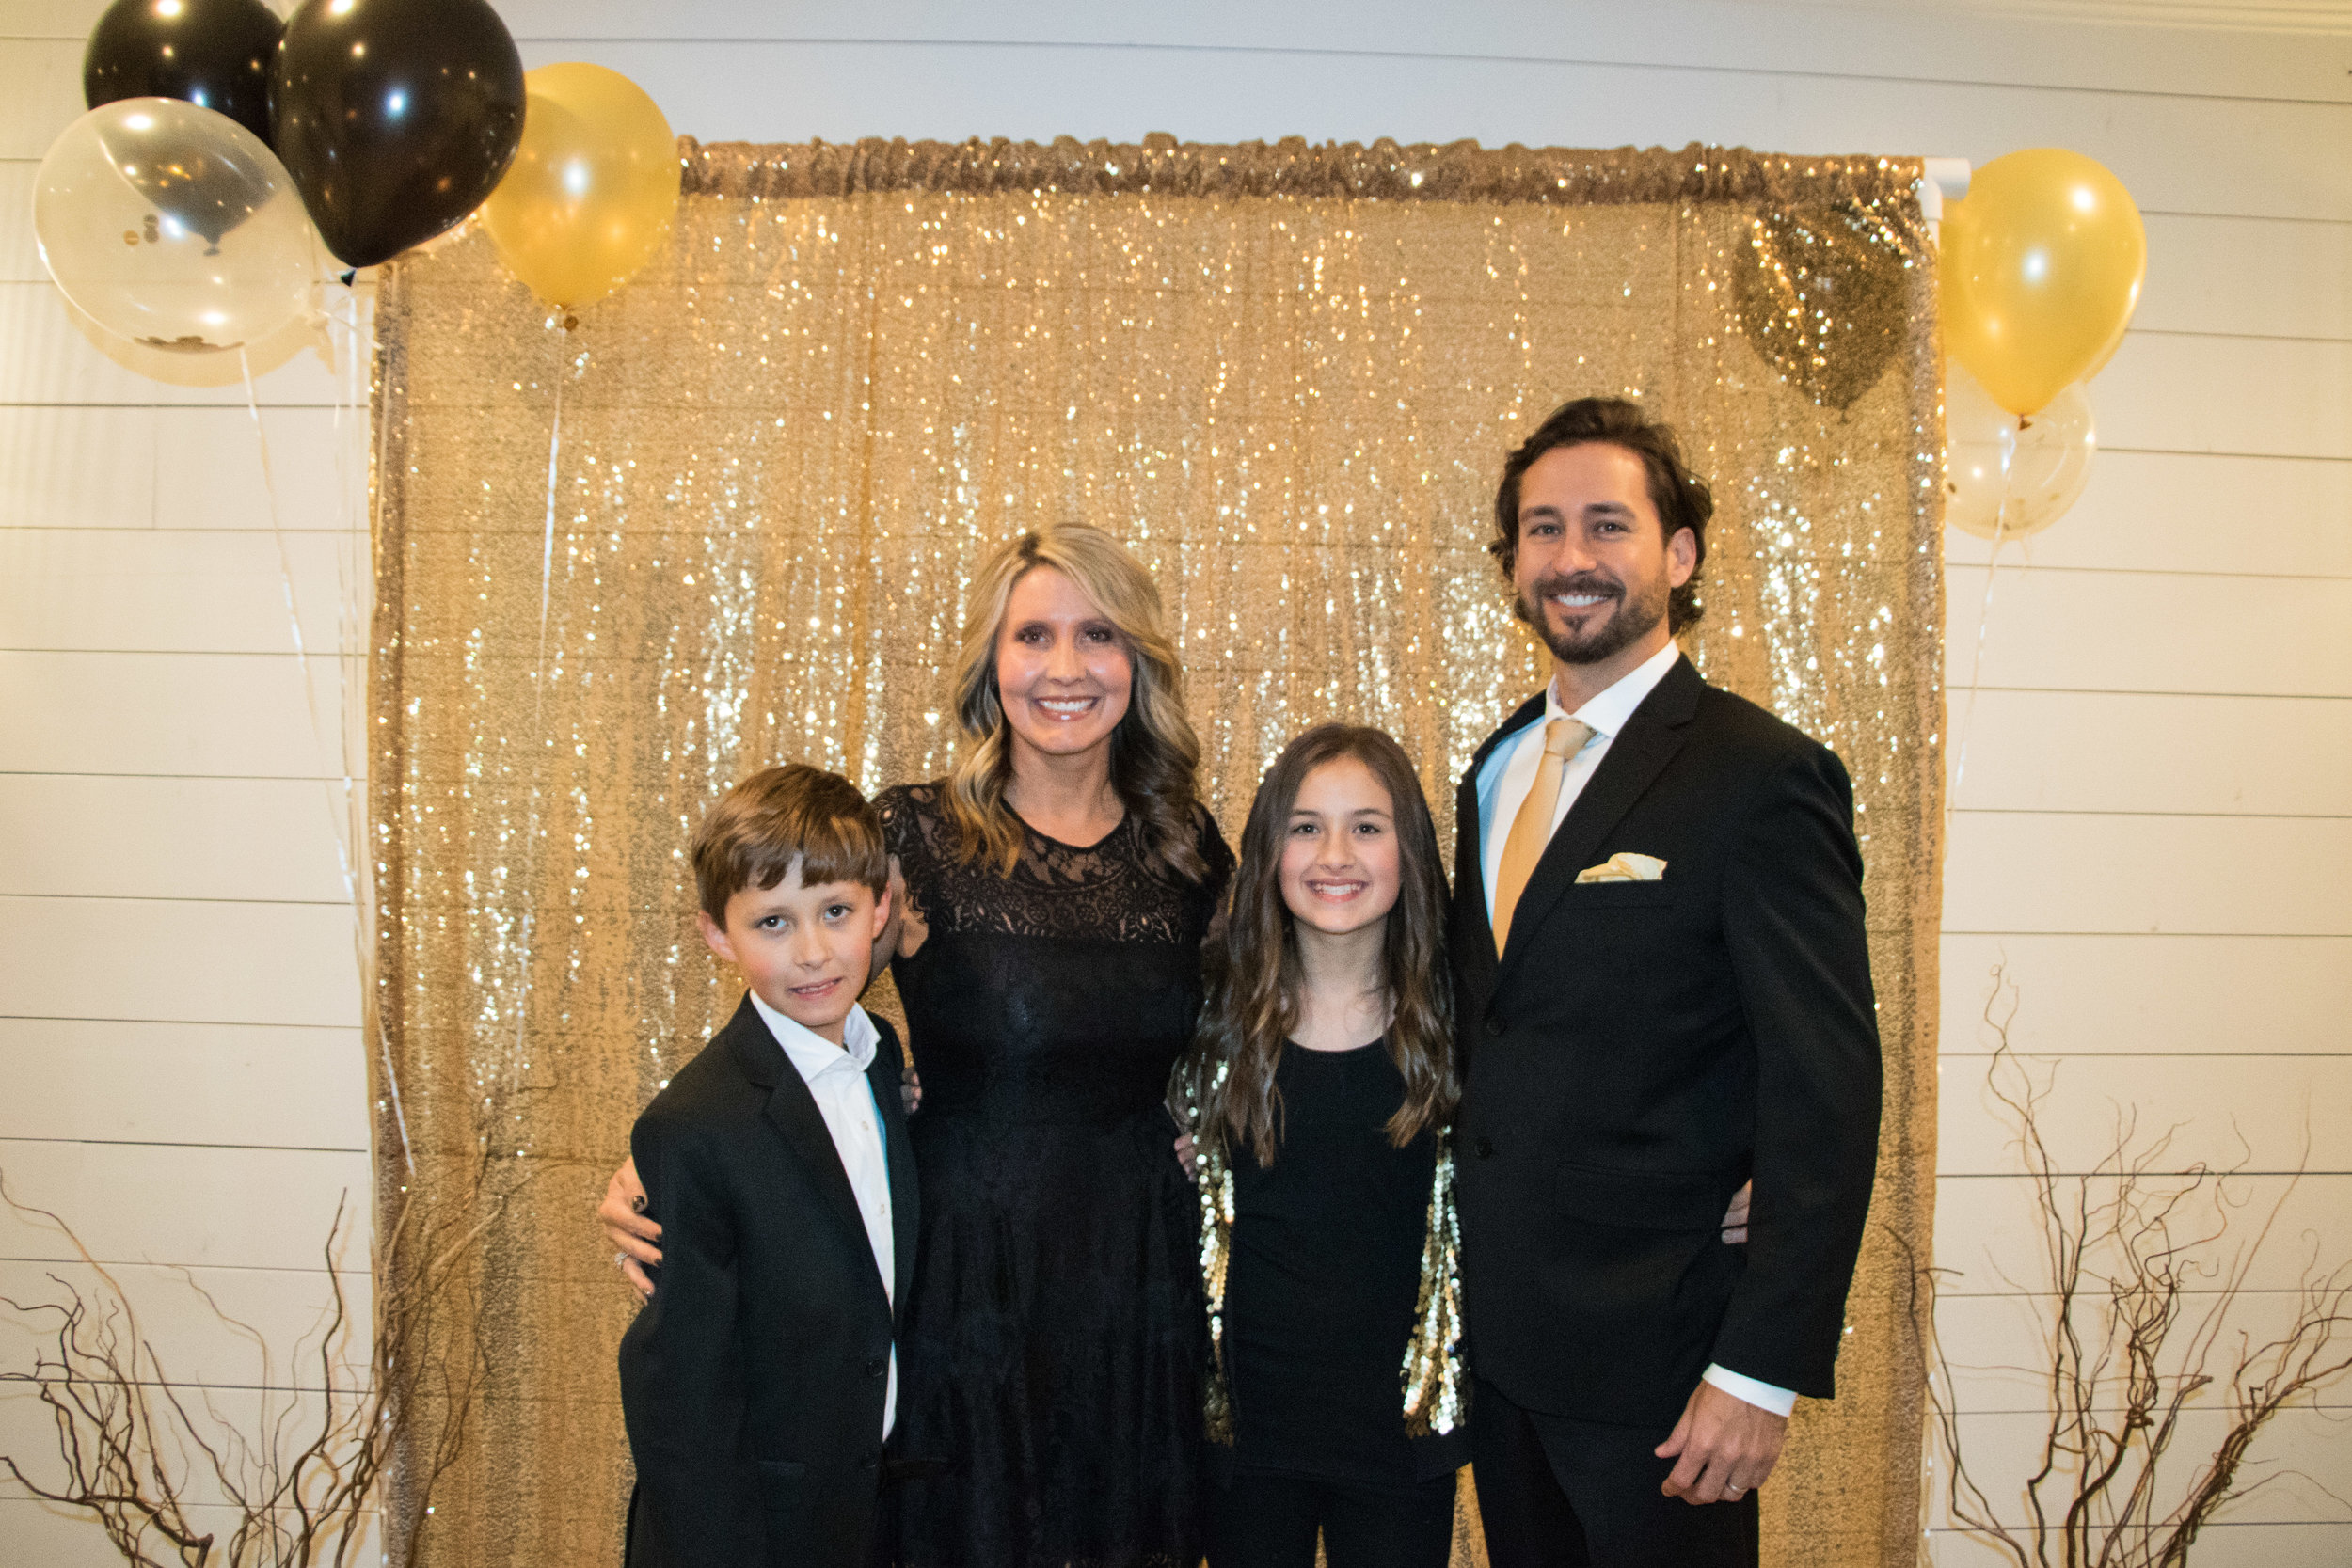 Our whole family got in on the Black and Gold theme!